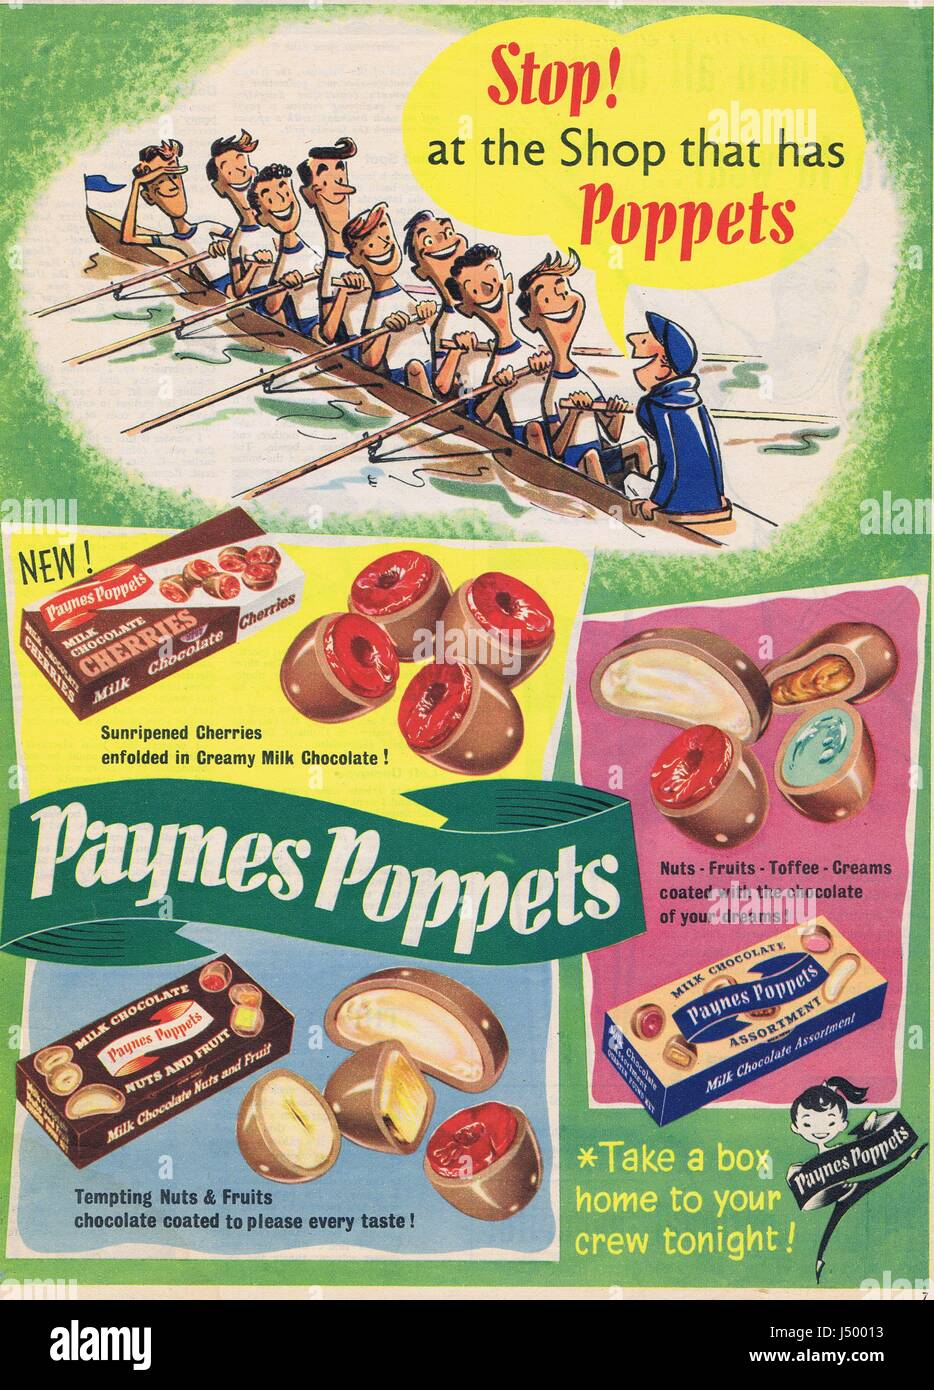 Paynes Poppets Historical Advertising 1950's - Stock Image